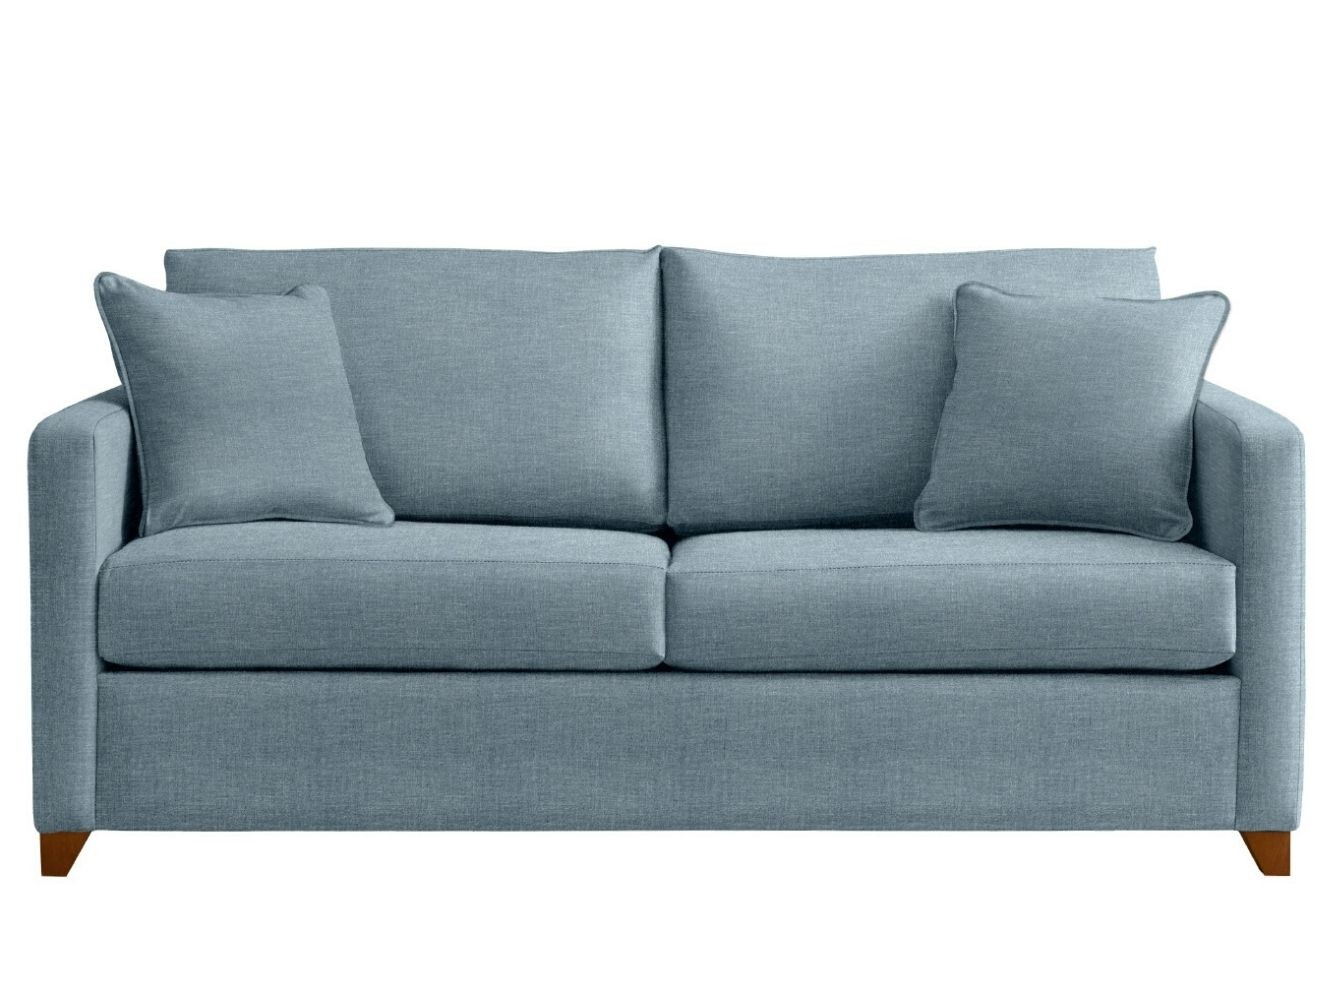 This is how I look in Stain Resistant Cotton (Discontinued Fabric) with reflex foam seat cushions